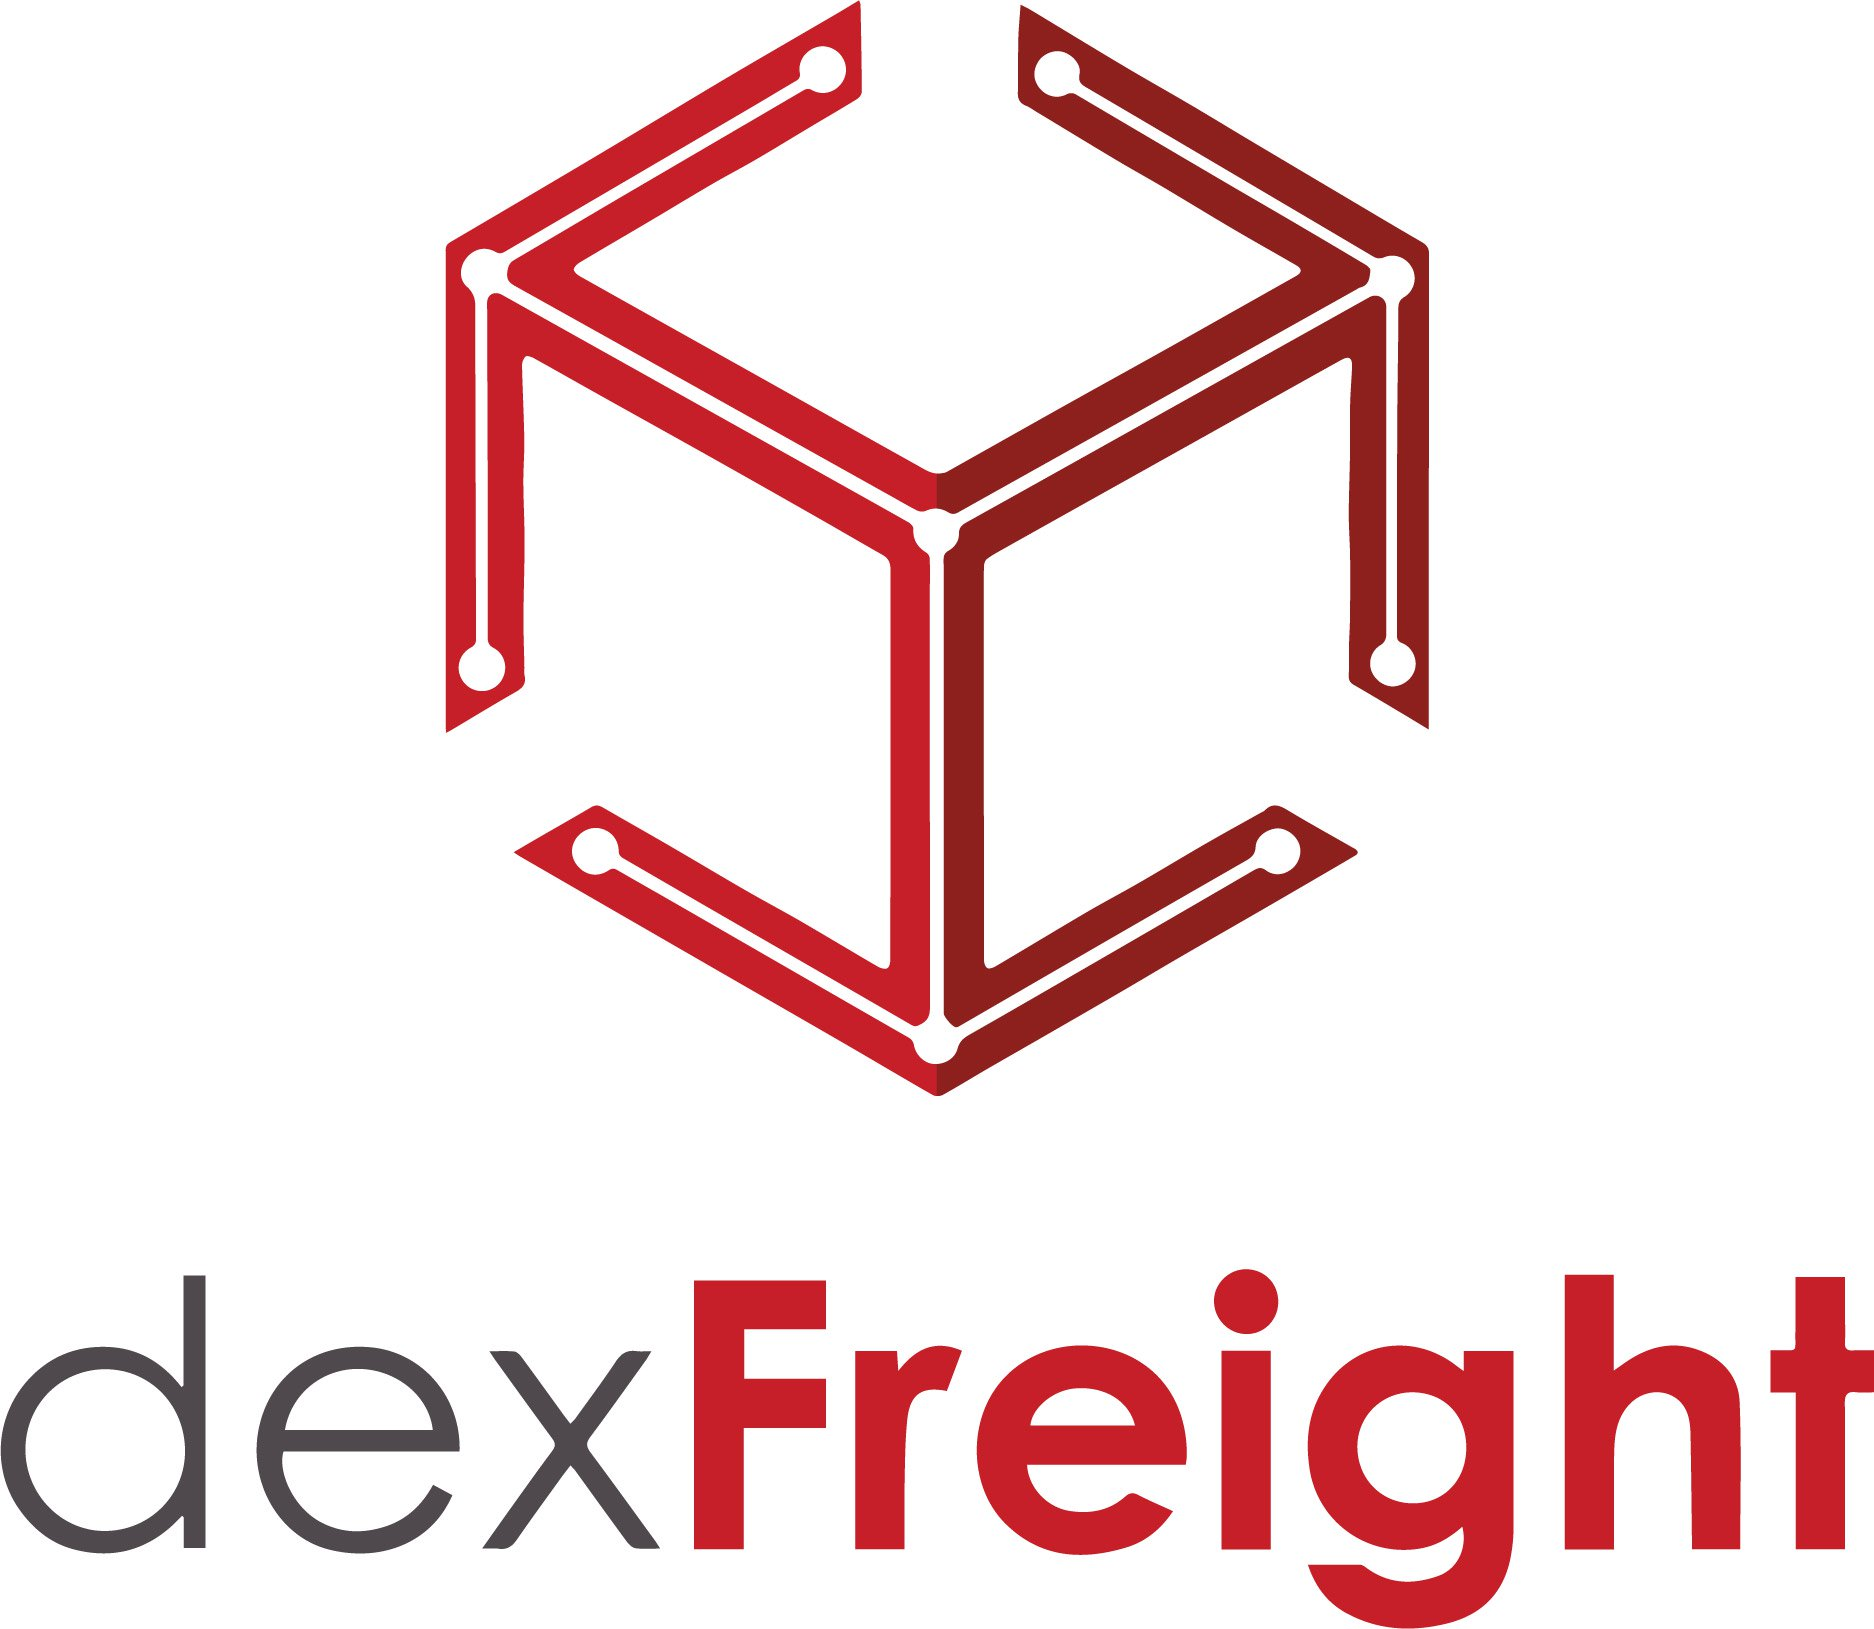 dexFreight to improve port operations via DLT-driven initiative in partnerships with Veracruz port community, Texas A&M Transportation Institute (TTI)